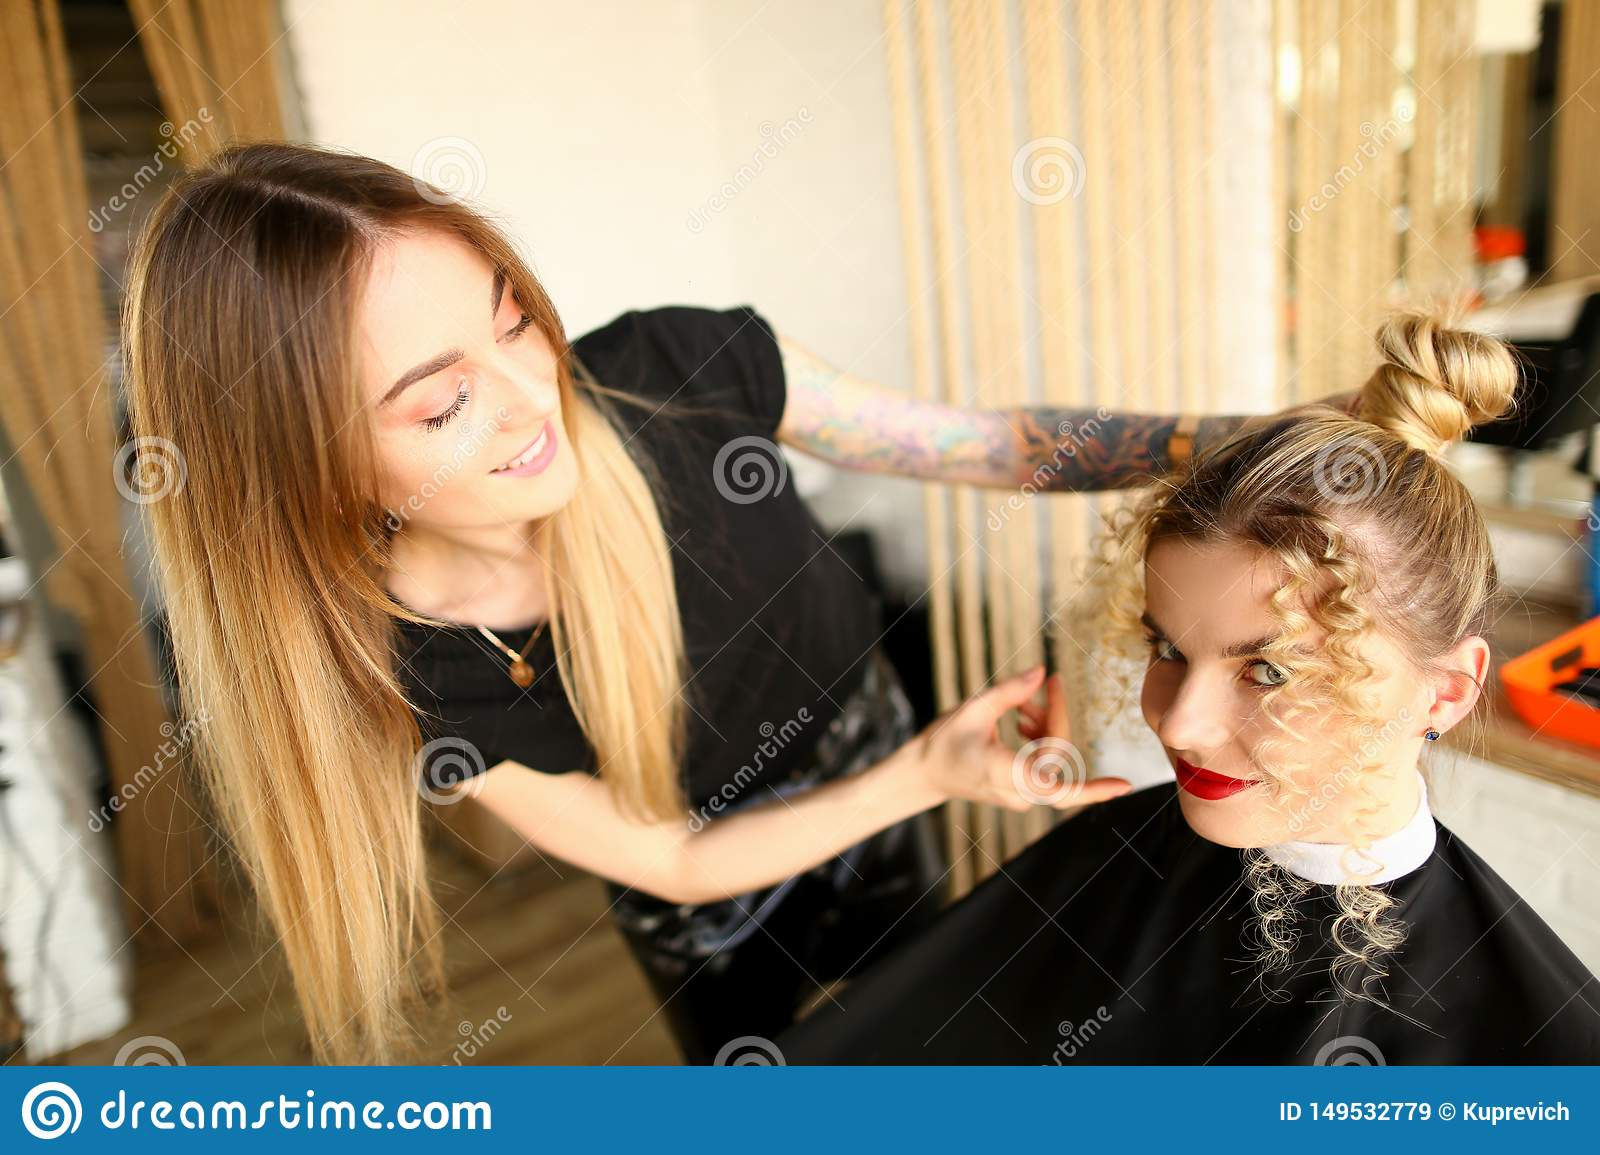 Blonde Hairdresser Making Hairstyle with Curls